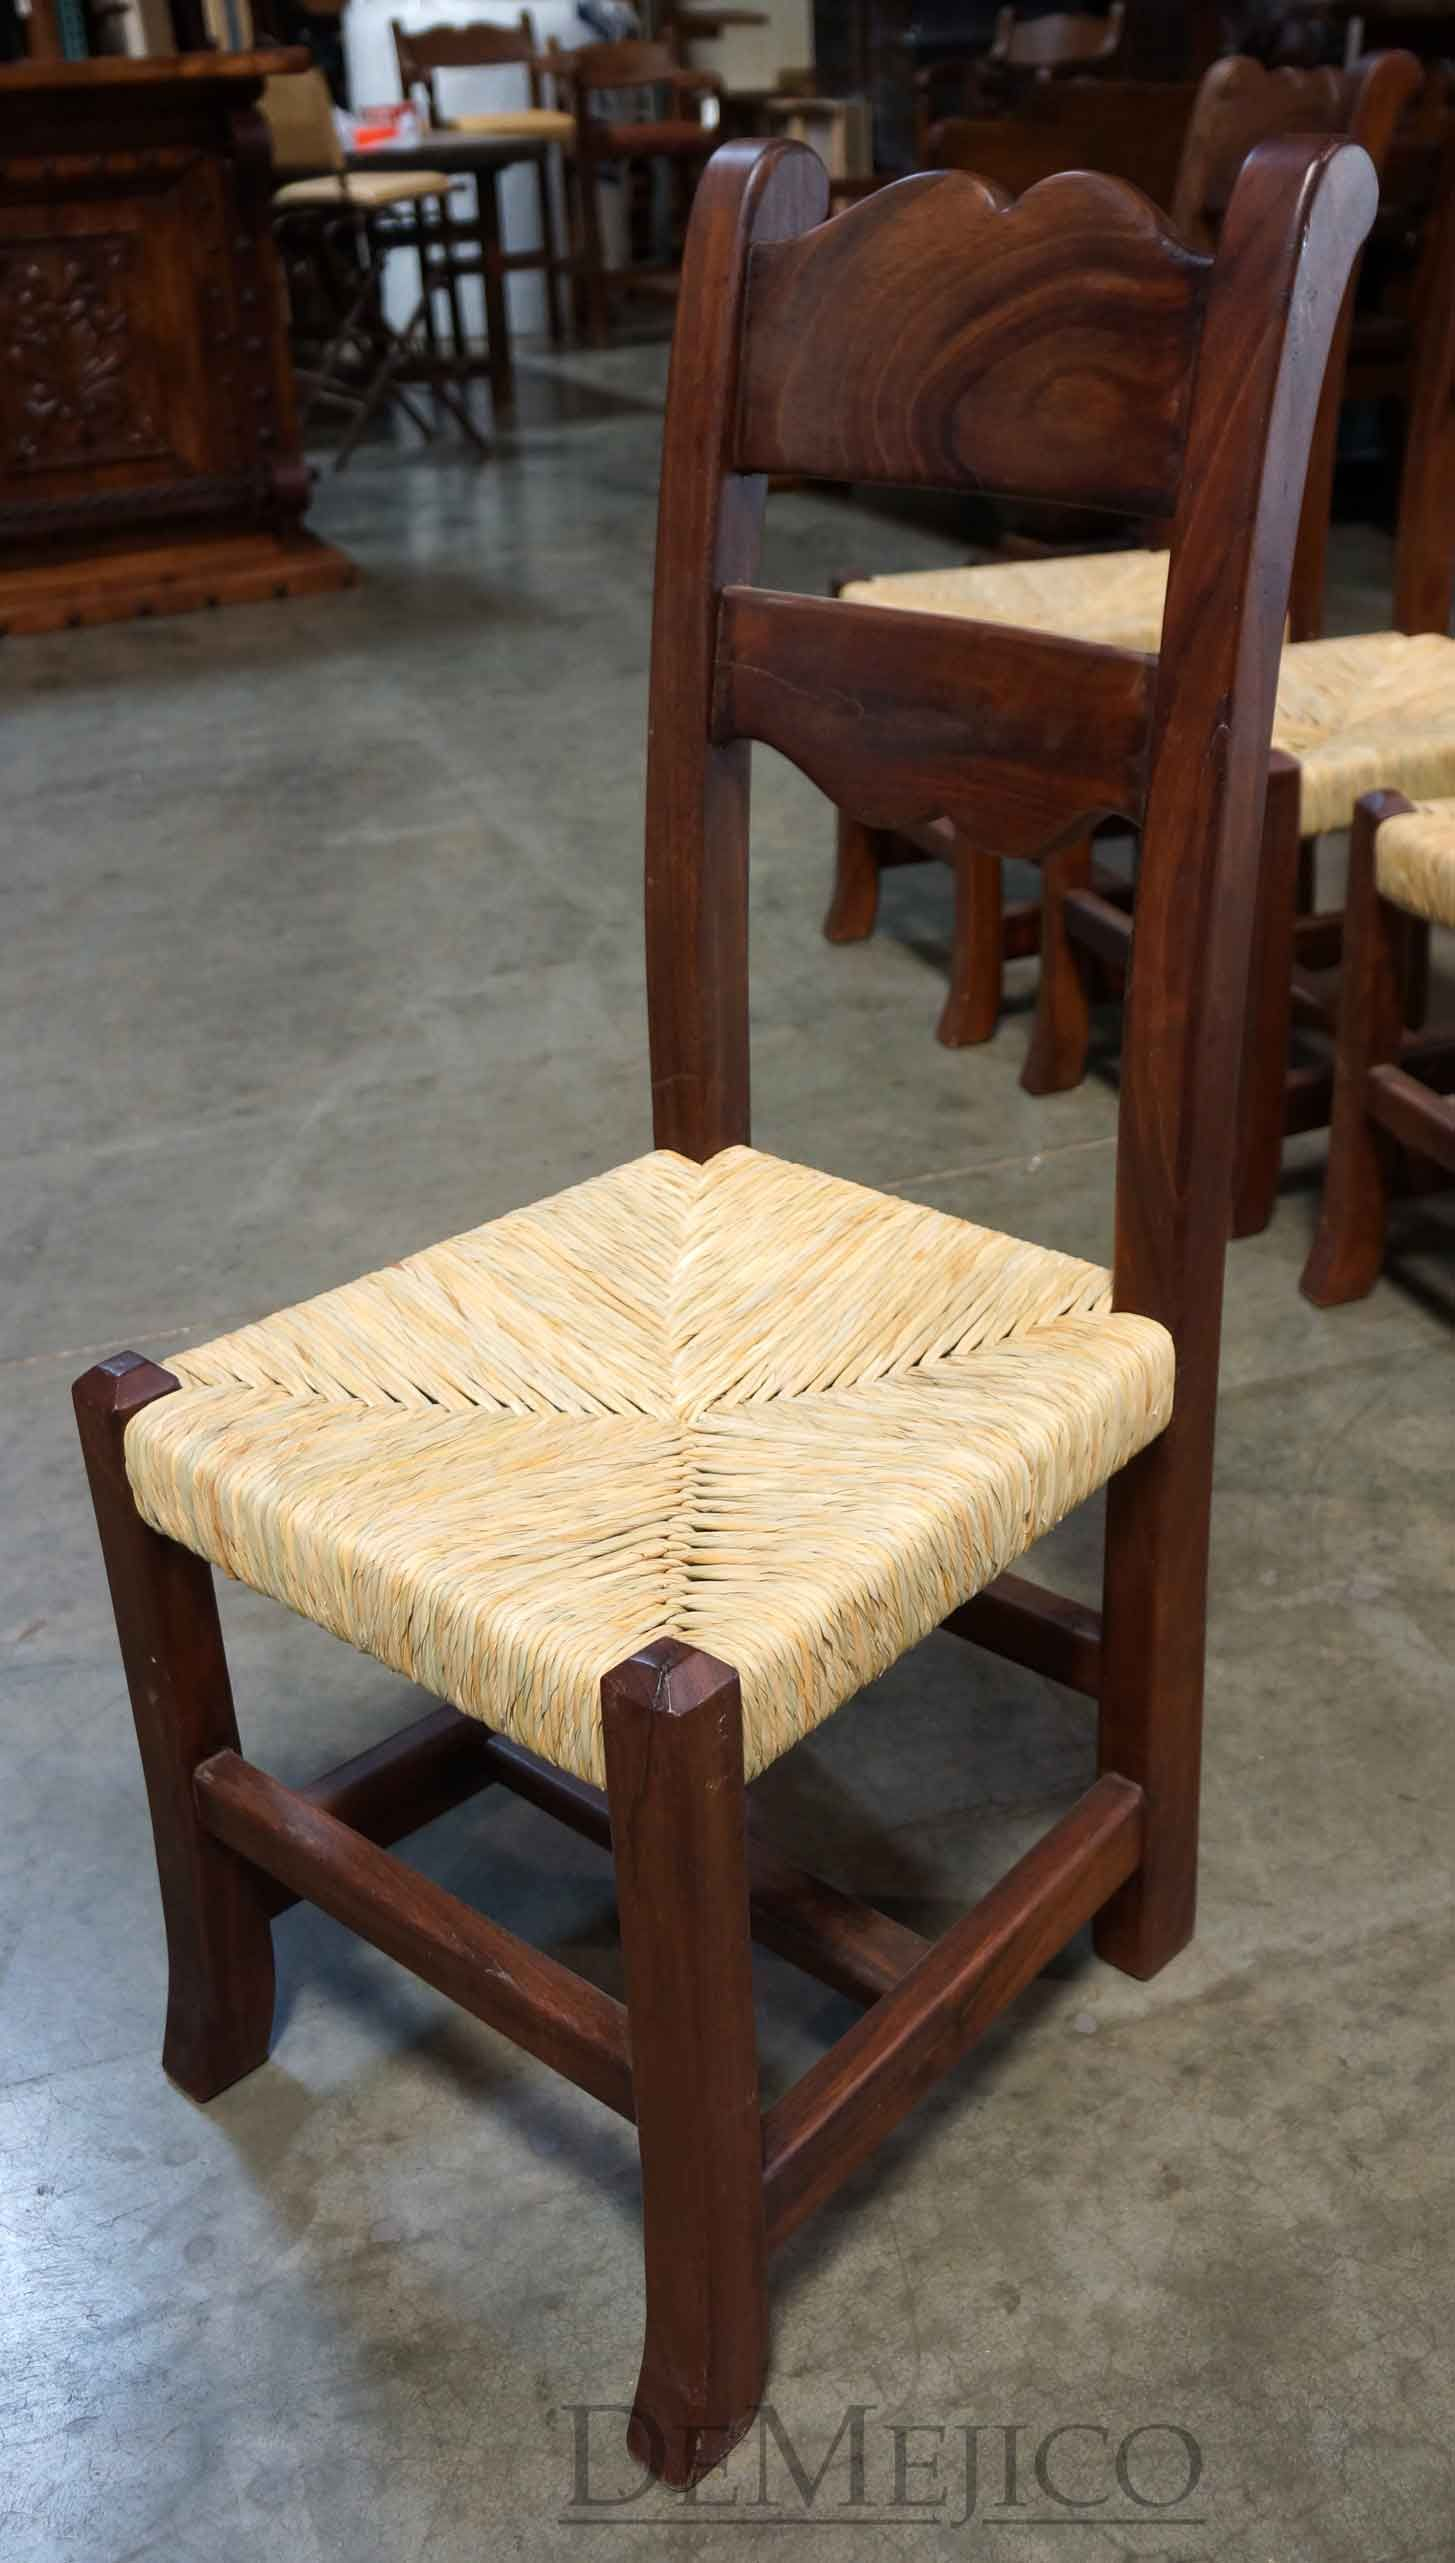 custom spanish style furniture. The Silla Circa Tejida Especial Is Our Traditional Spanish Kitchen Chair With A Woven Seat. Custom Style Furniture E